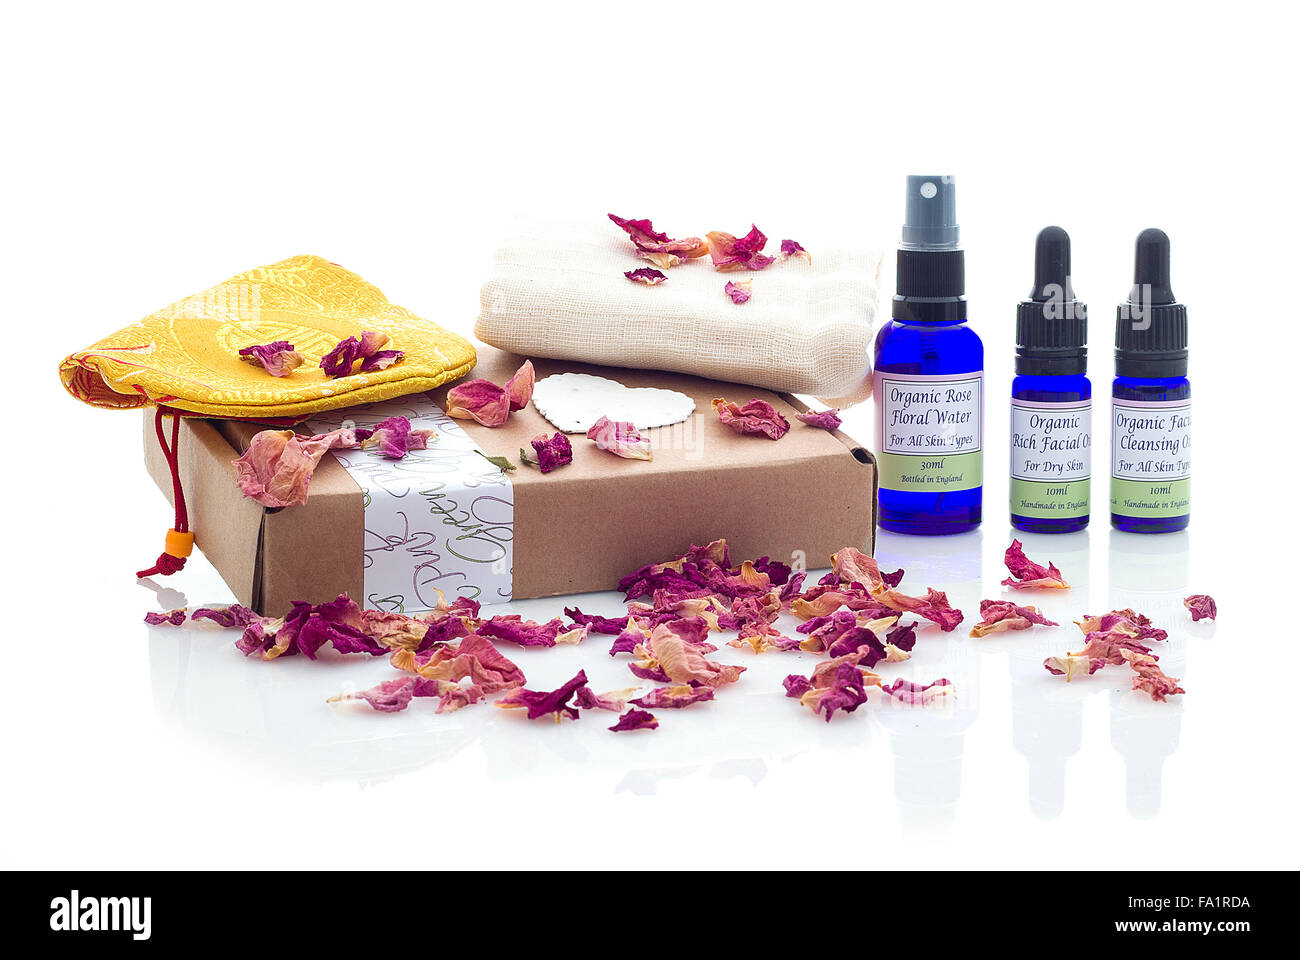 Pink&Green Handmade Natural Facial Skincare Products on a white background Stock Photo